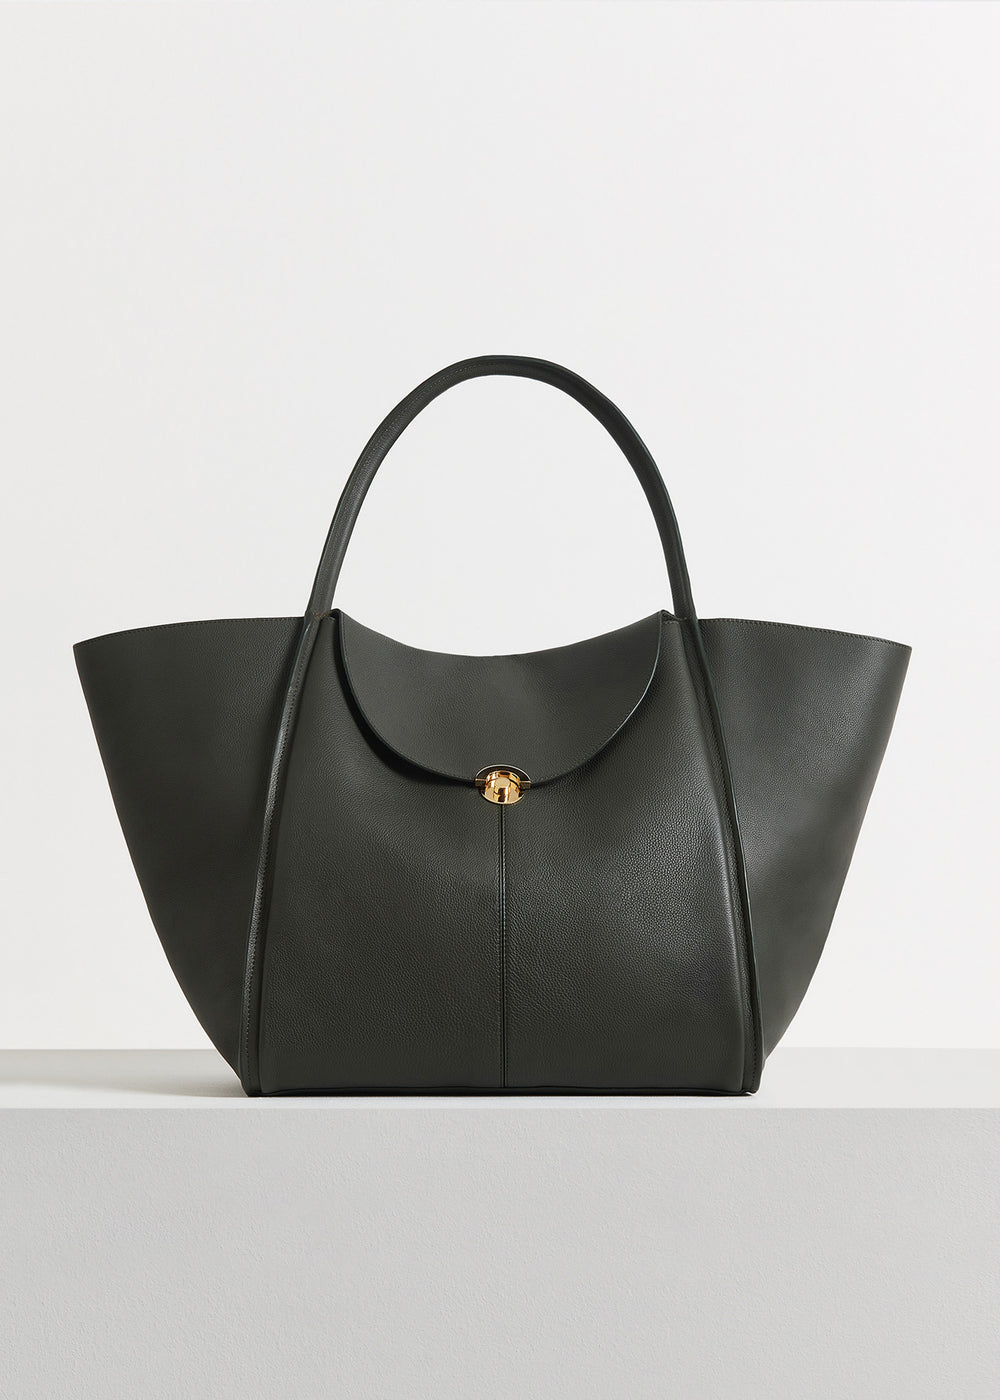 Cabas Bag in Pebbled Leather - Black in Olive by Co Collections